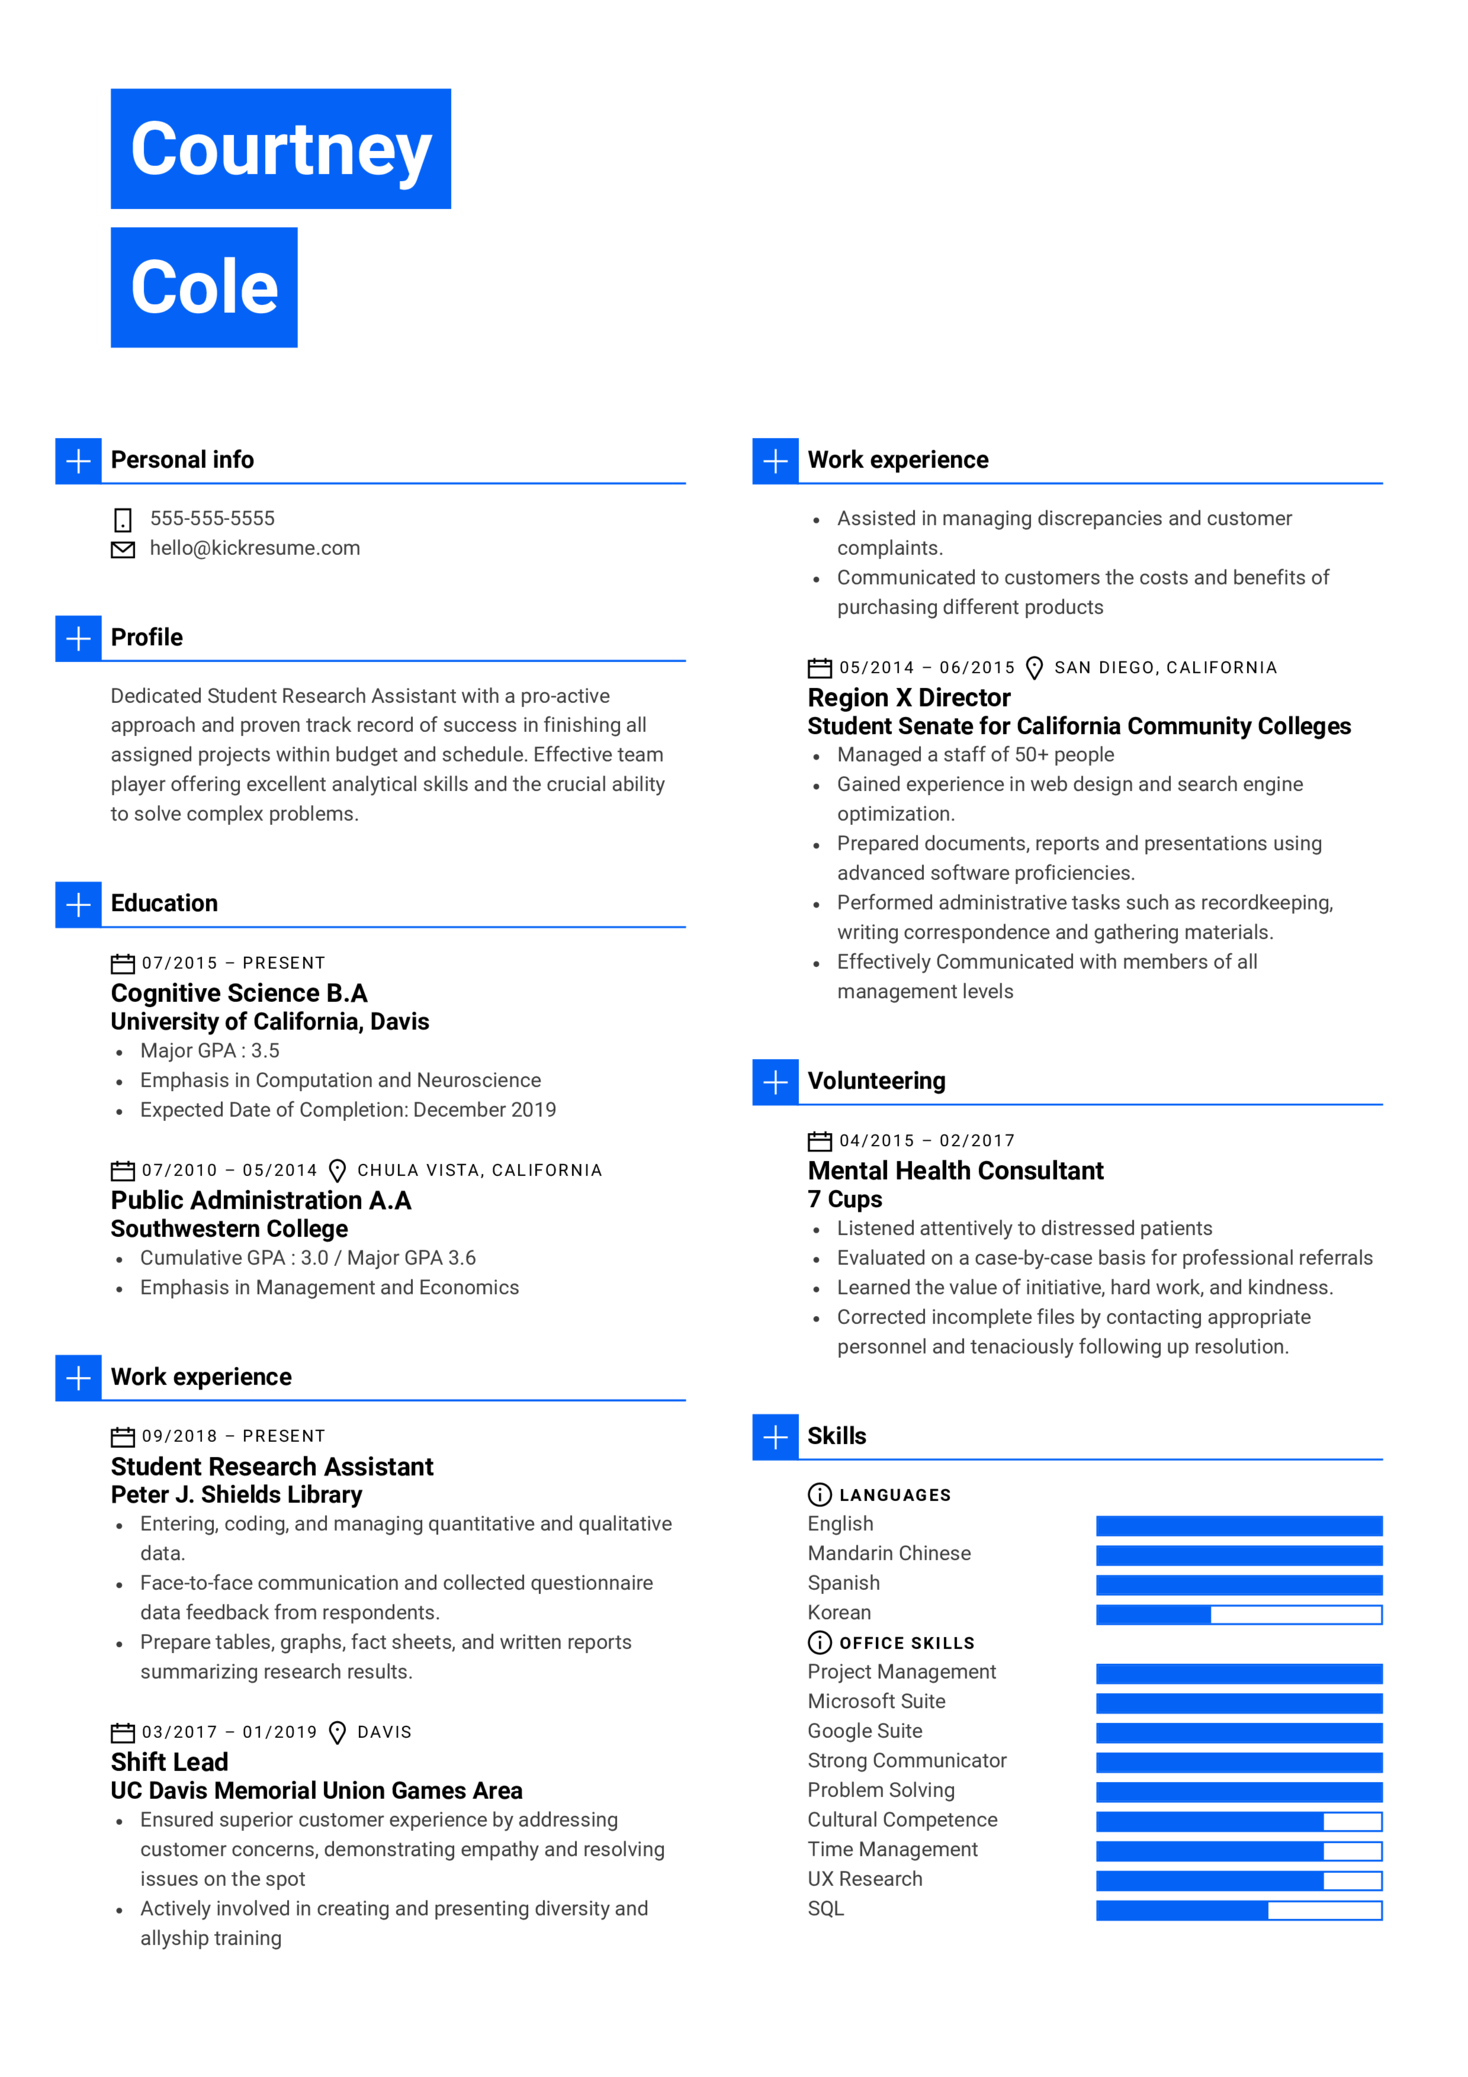 University of California, Davis Student Research Assistant Resume Example